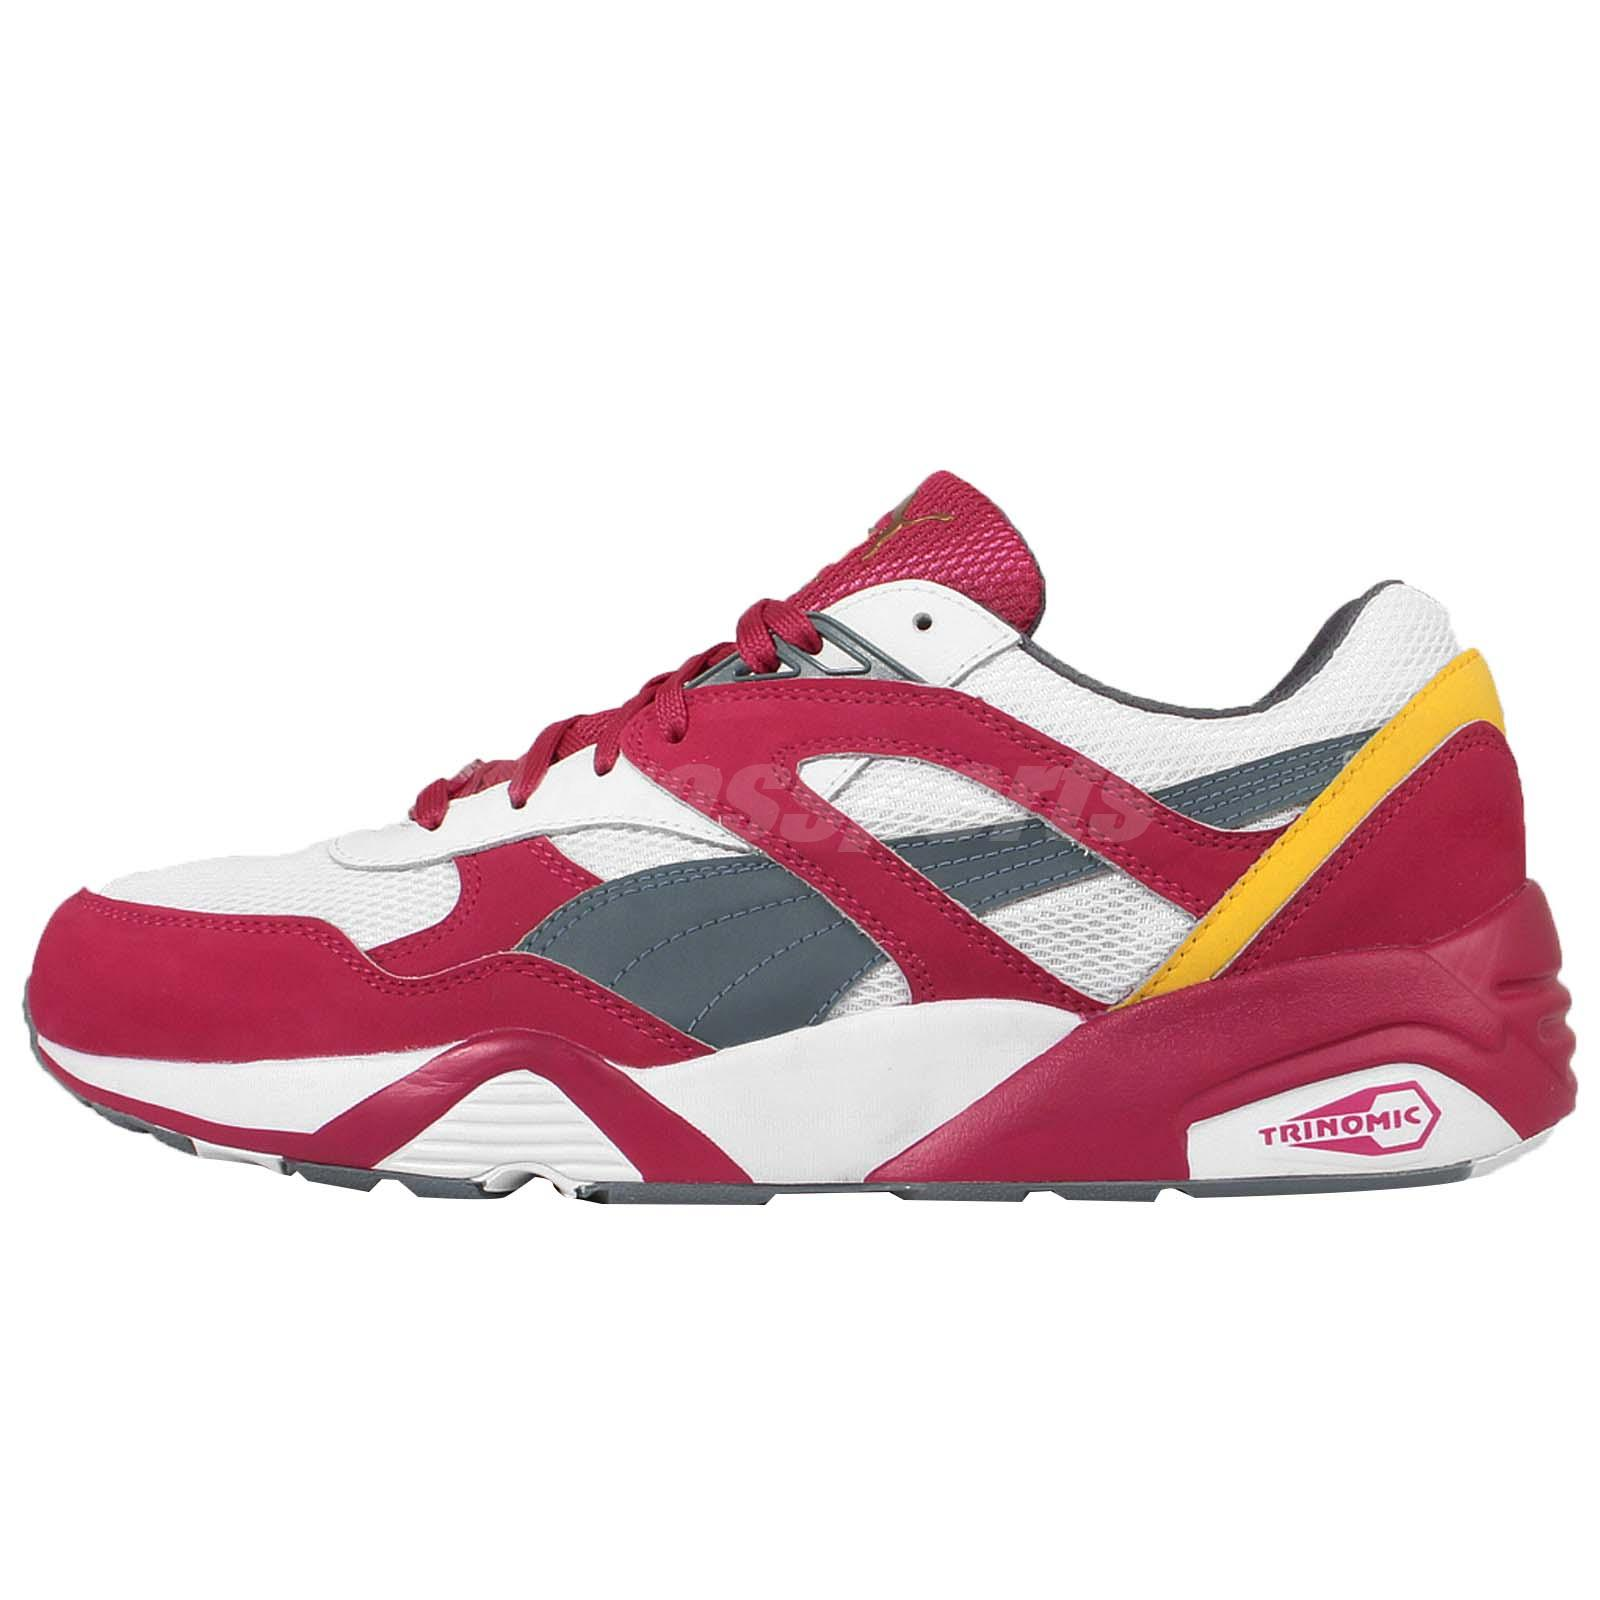 Puma R698 YOTM Year Of The Monkey Mens Running Shoes Sneakers Trainers 362093 02